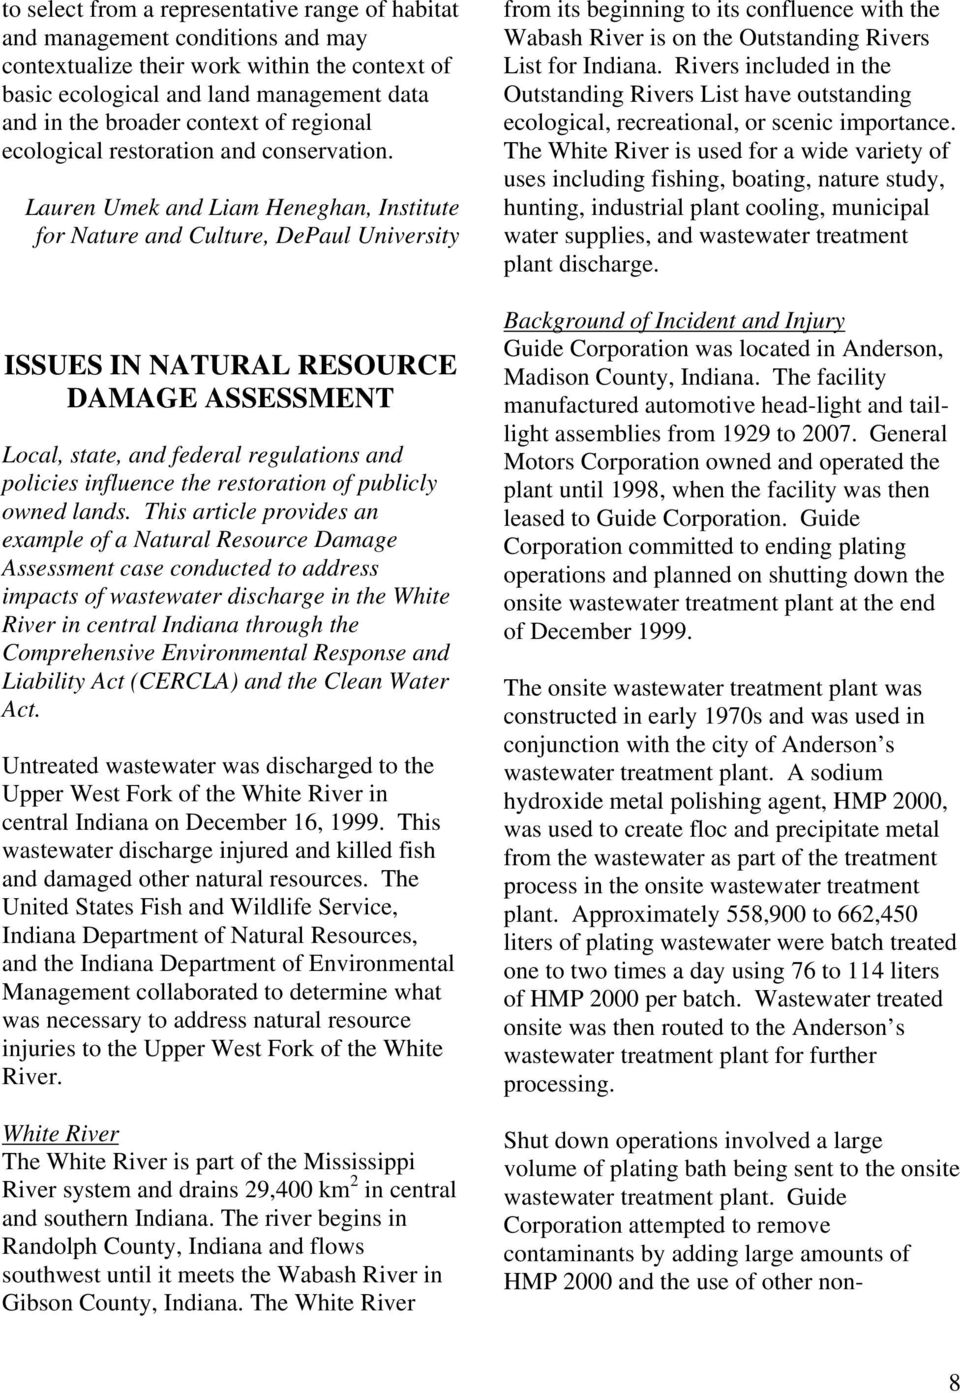 Lauren Umek and Liam Heneghan, Institute for Nature and Culture, DePaul University ISSUES IN NATURAL RESOURCE DAMAGE ASSESSMENT Local, state, and federal regulations and policies influence the